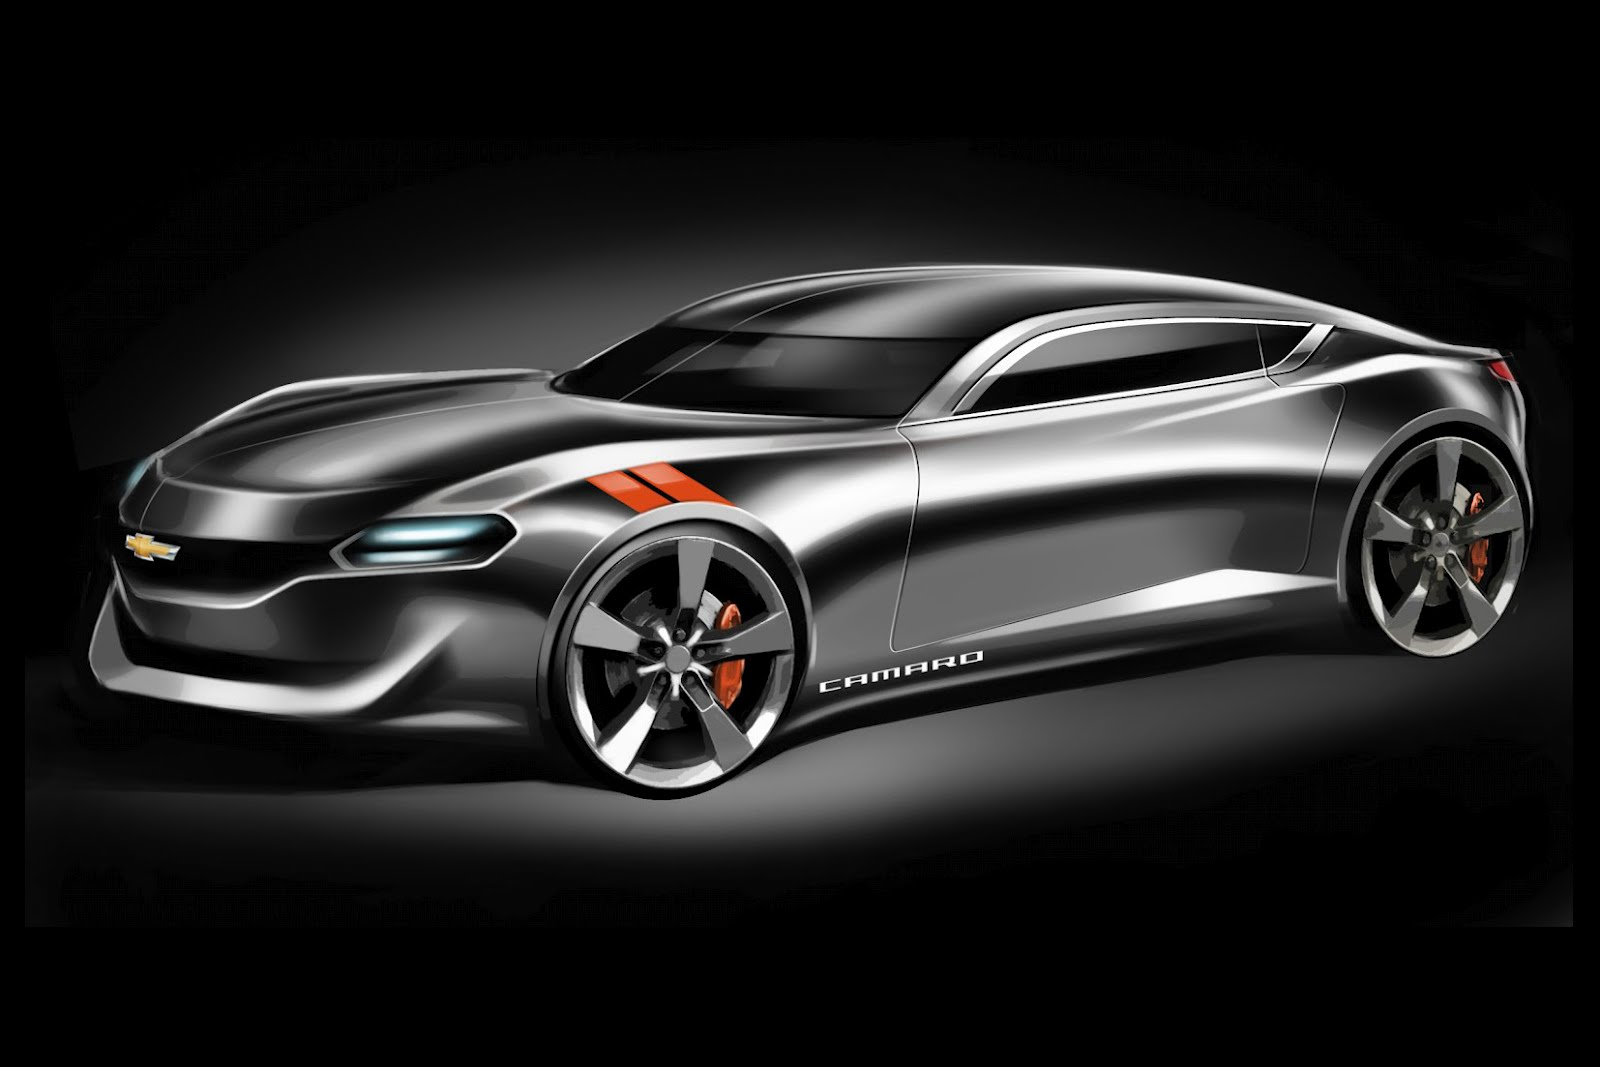 2015 Chevrolet Camaro Coupe Design Study What do Think Wallpaper For Phone